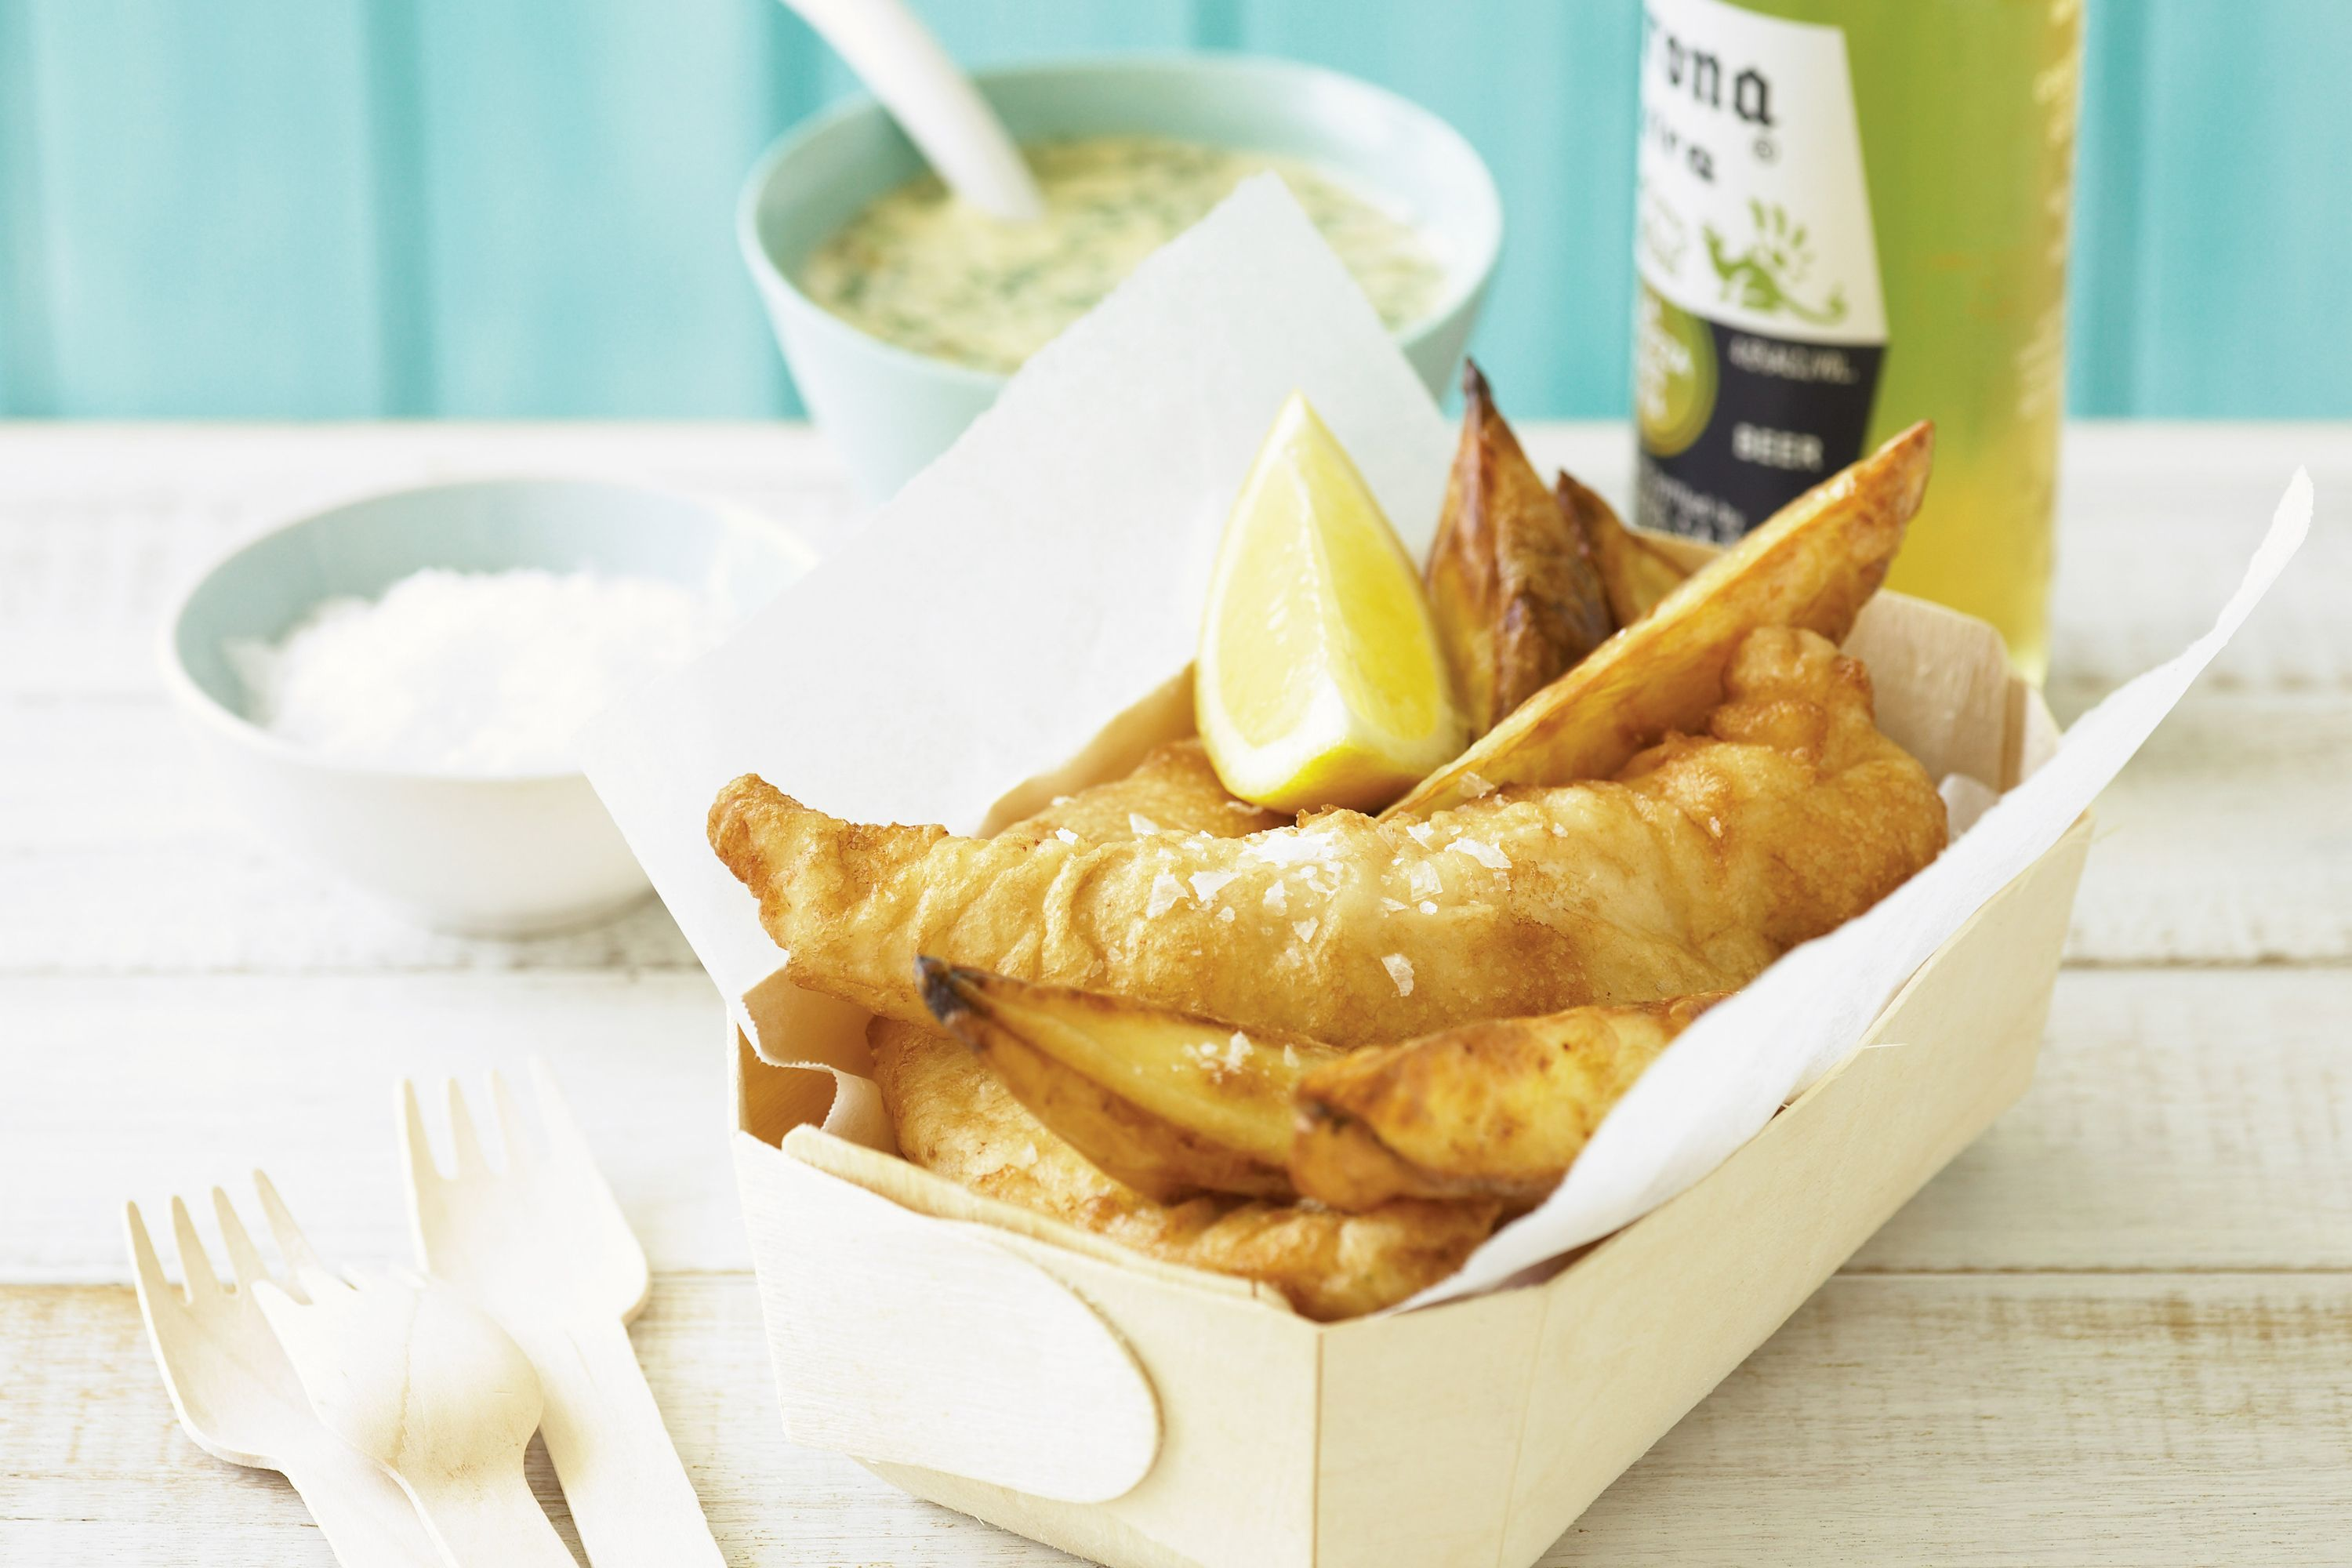 Beer-battered fish and chips http://www.taste.com.au/recipes/1960/beer+battered+fish+and+chips